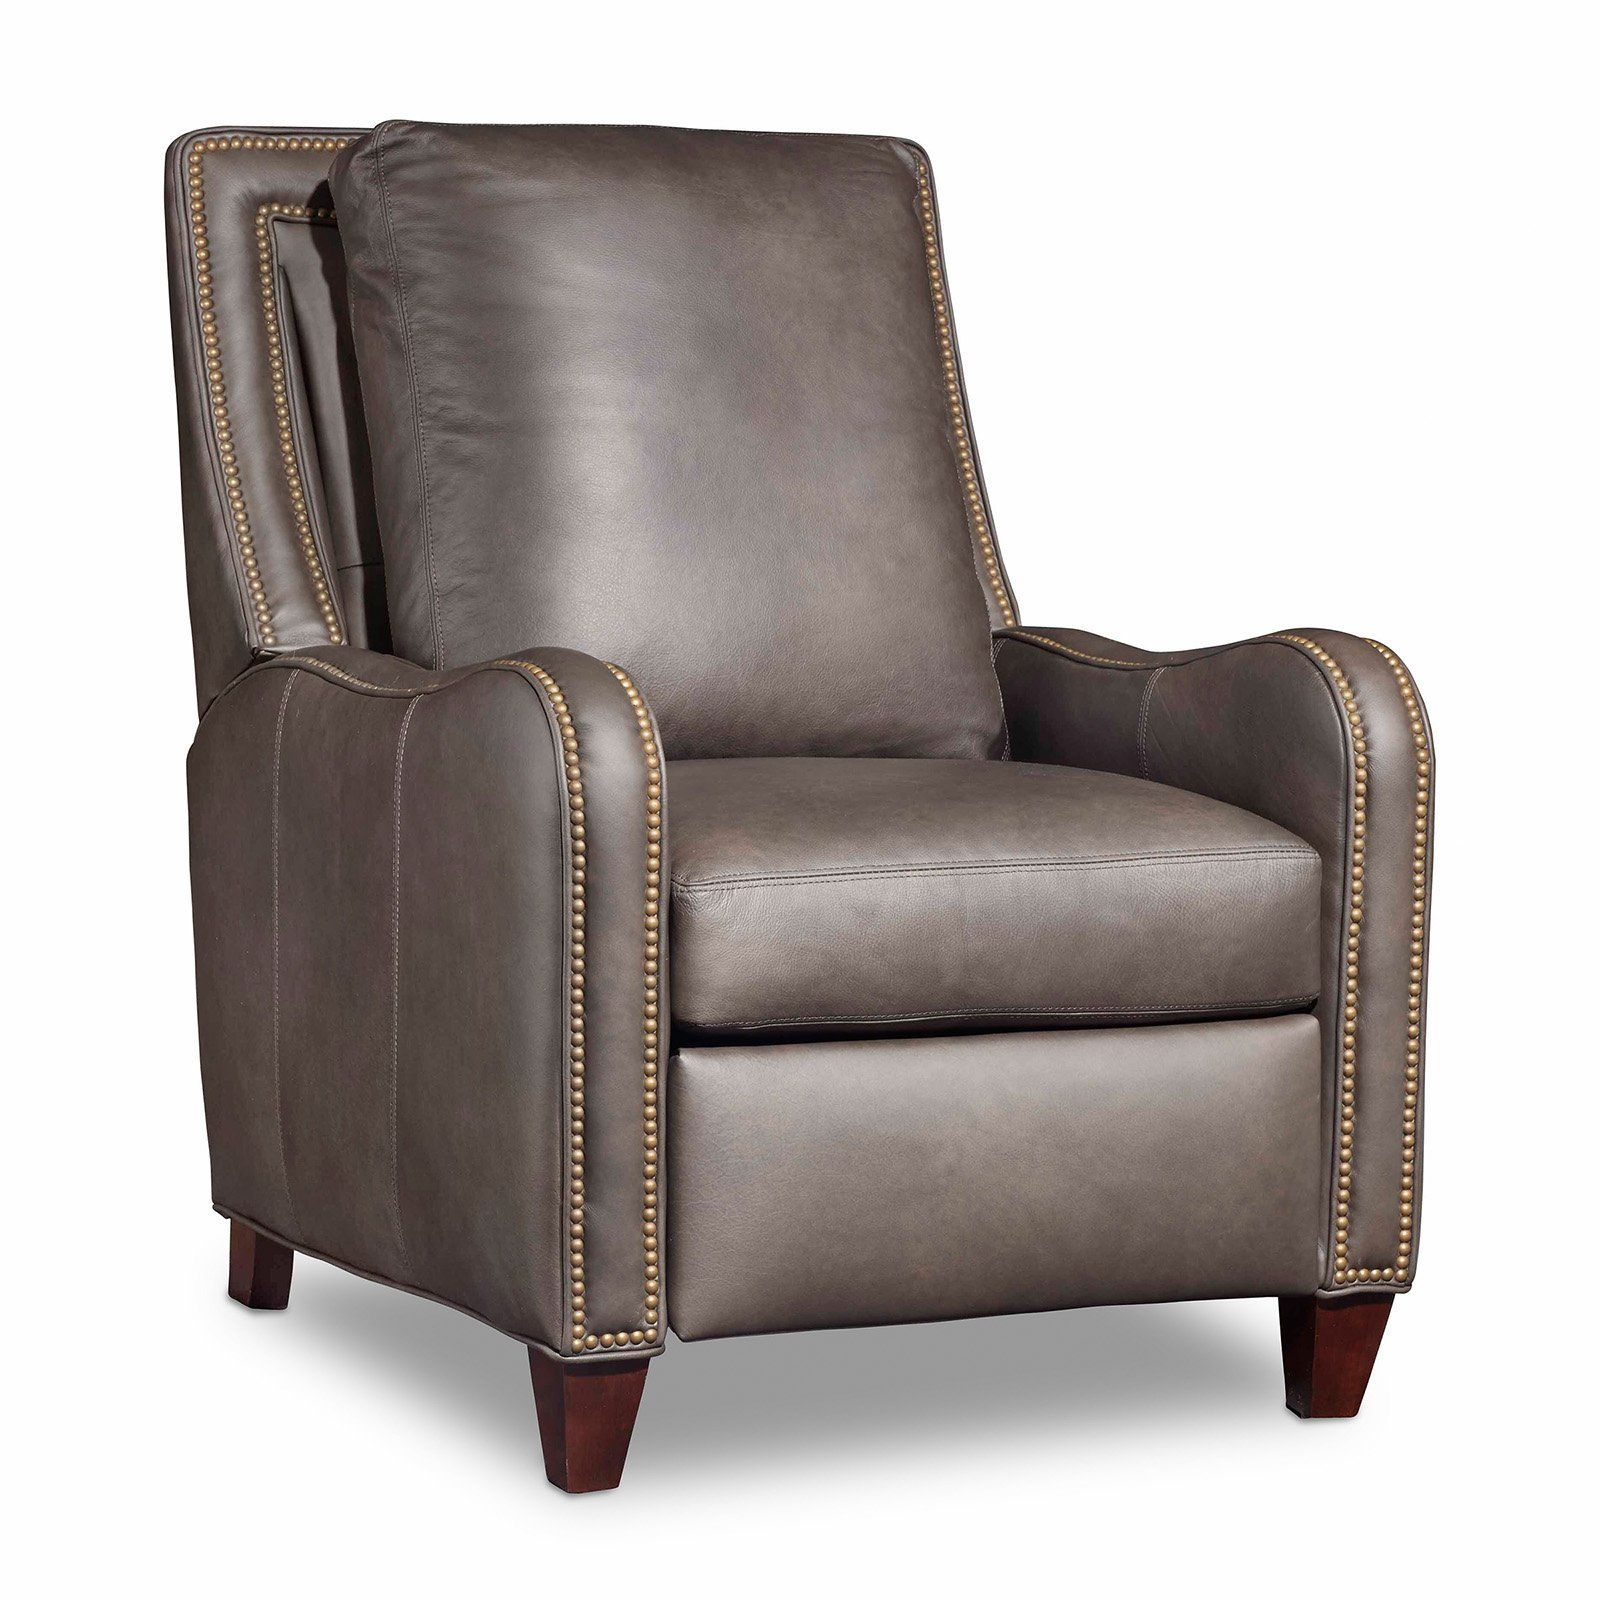 Bradington Young Greco Leather Recliner From Hayneedle Com 33 5